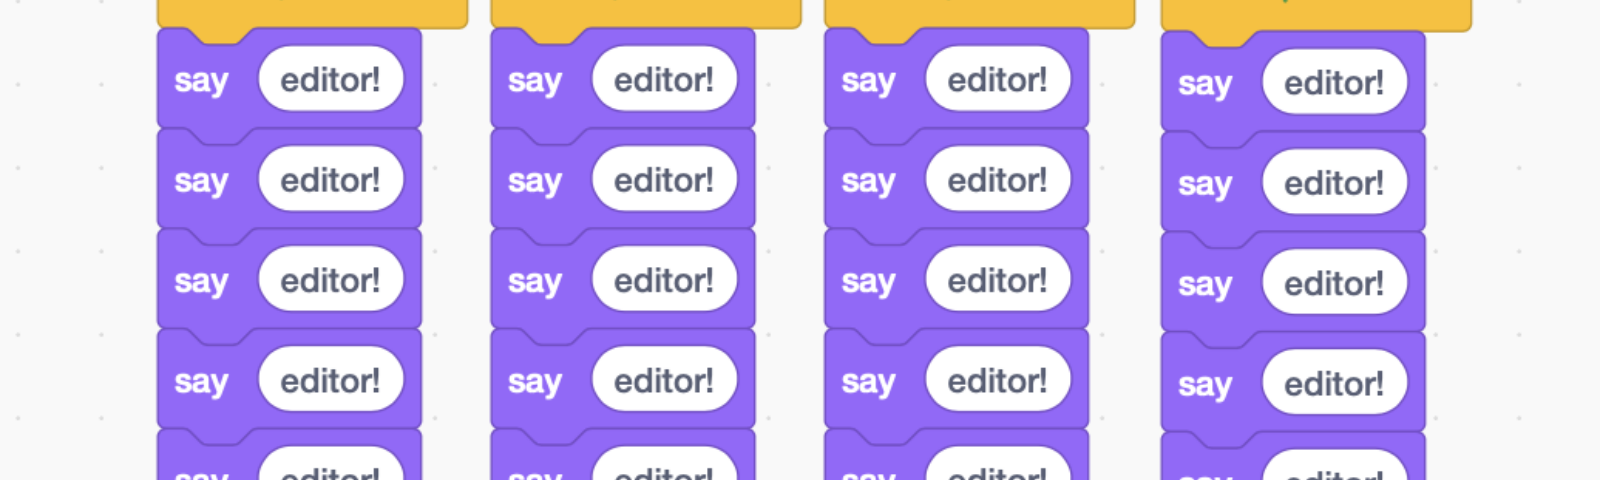 """A Scratch program that, when clicked, redundantly updates a character's speech bubble to say """"editor!"""" 28 times."""